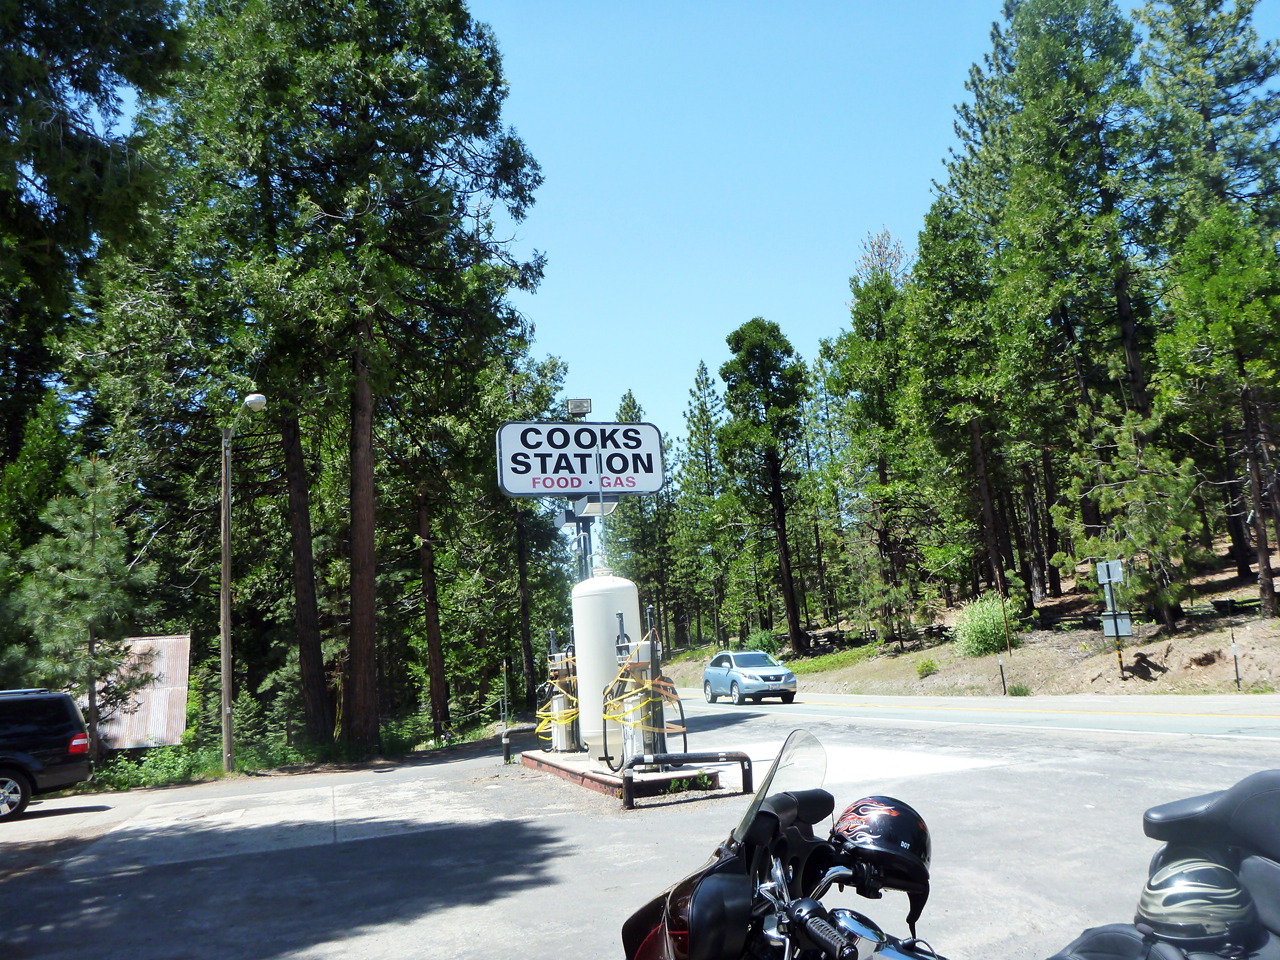 Stopping for snacks and water at Cook's Station